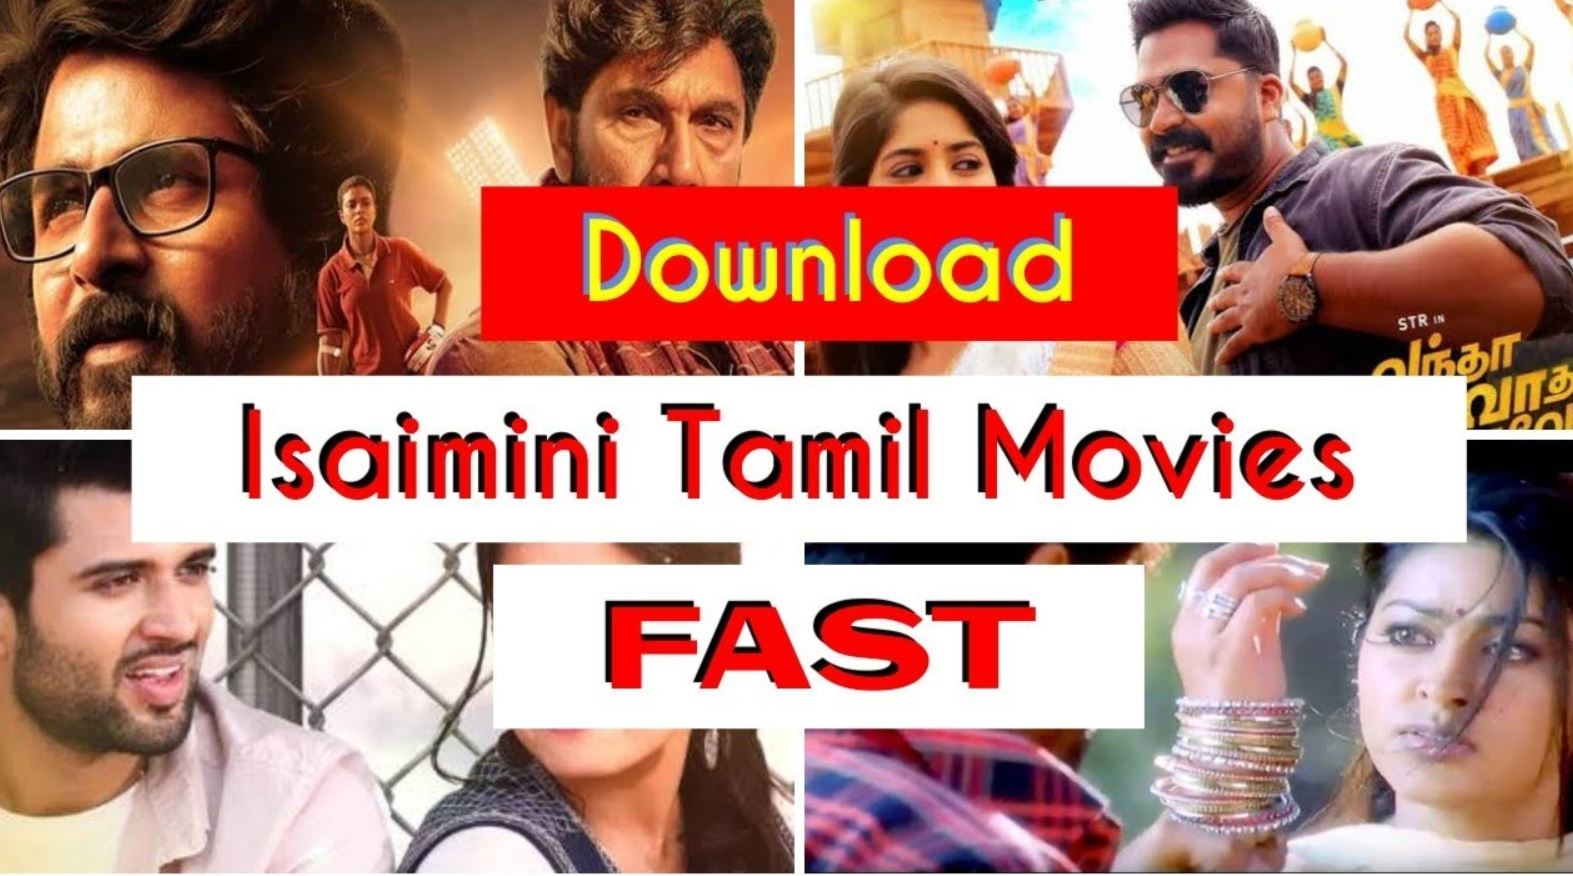 Isaimini Pirated Movies 2020 Tamil Movies Download Viral Websites